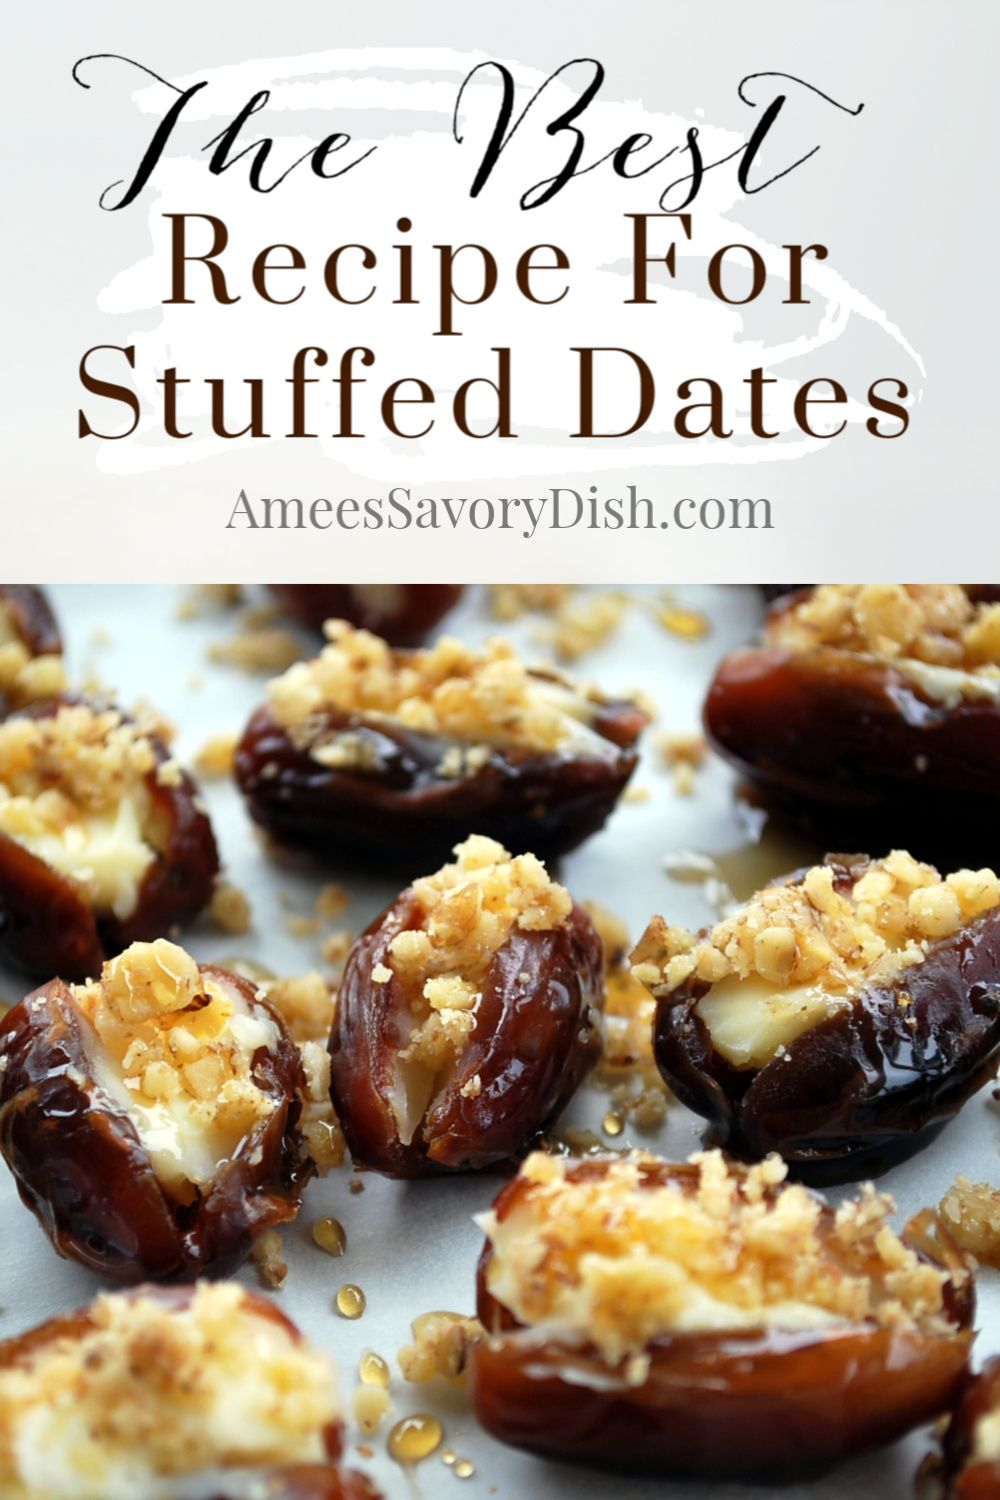 Mascarpone Stuffed Dates With Maple Drizzle Recipe Mascarpone Recipes Date Recipes Savoury Dishes